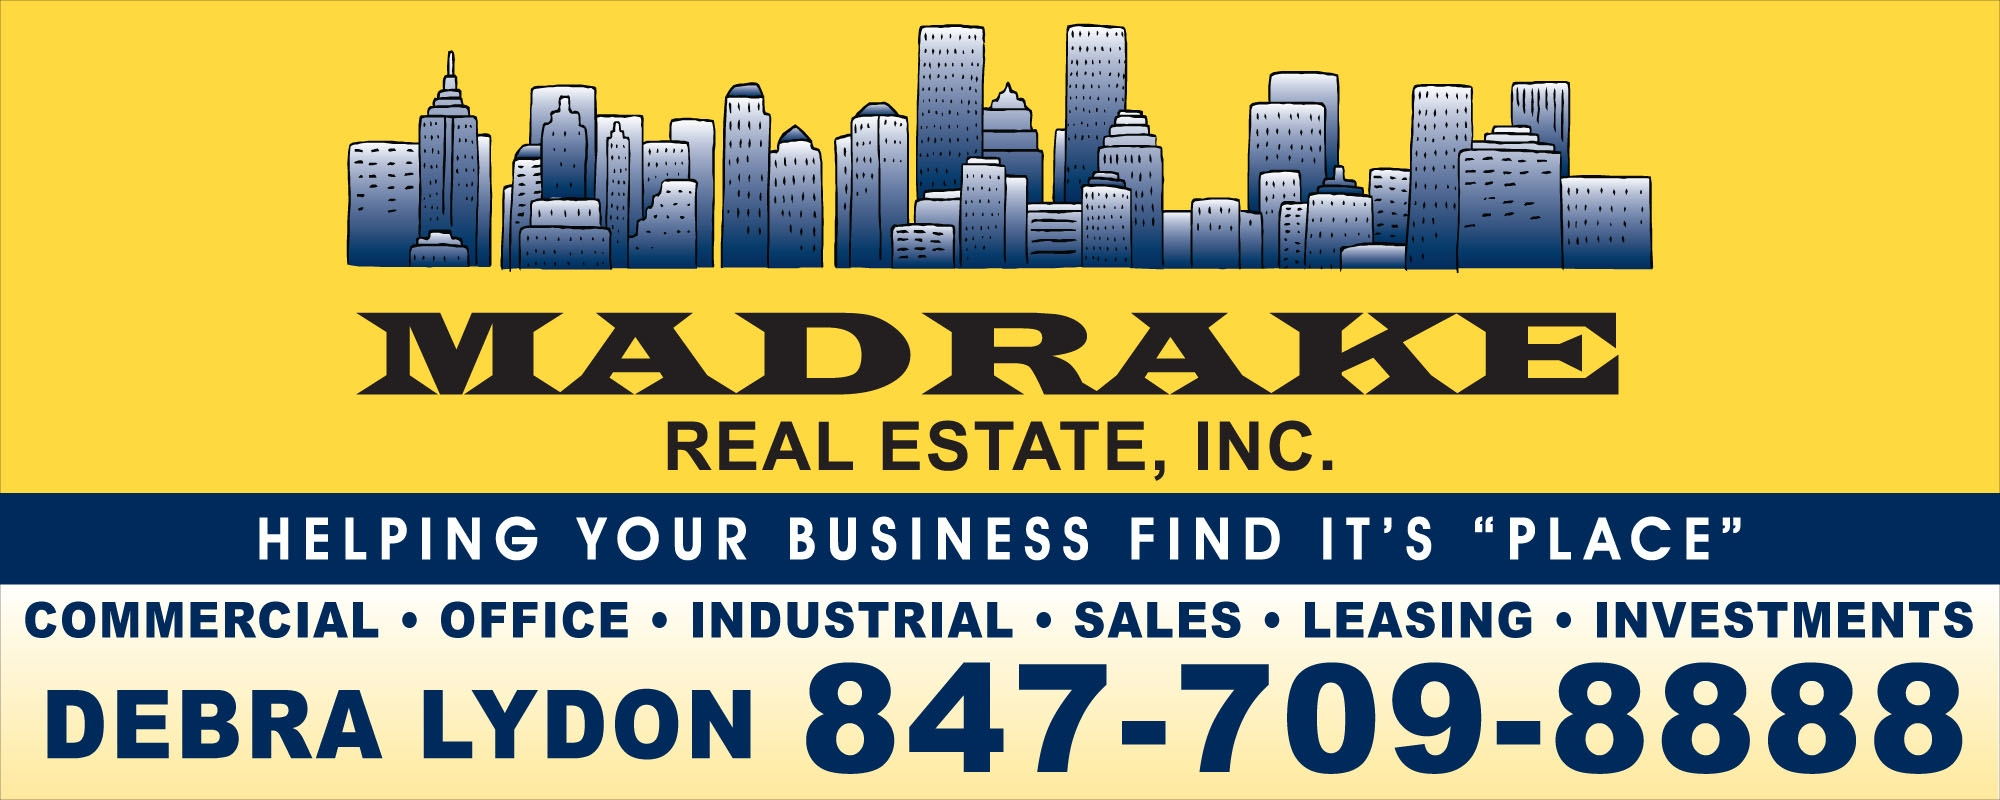 Madrake Real Estate